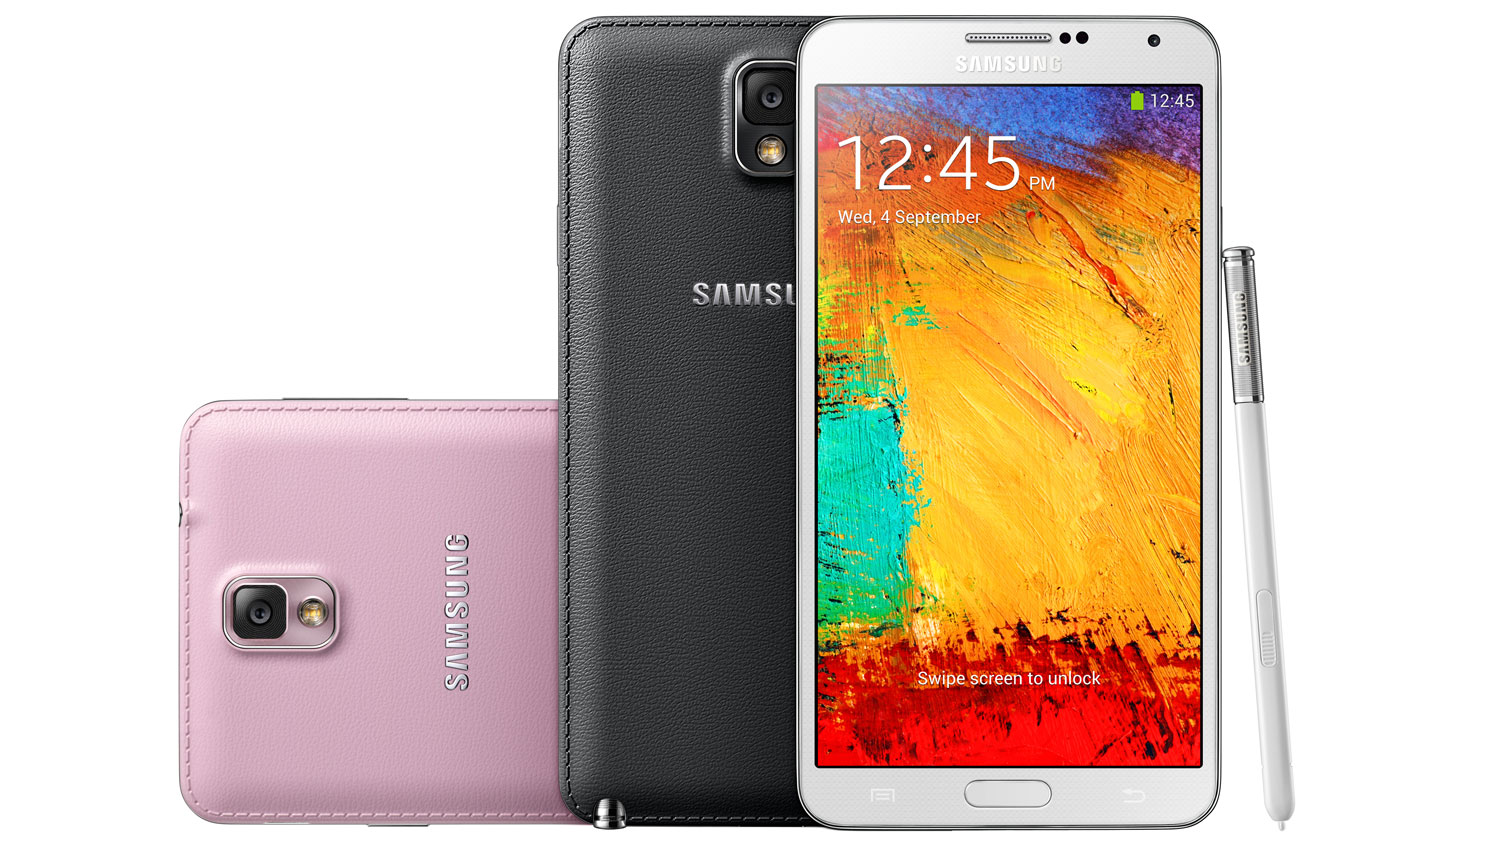 How to use scrapbook on note 3 - Samsung Galaxy Note 3 Review Battery Life And Connectivity Techradar